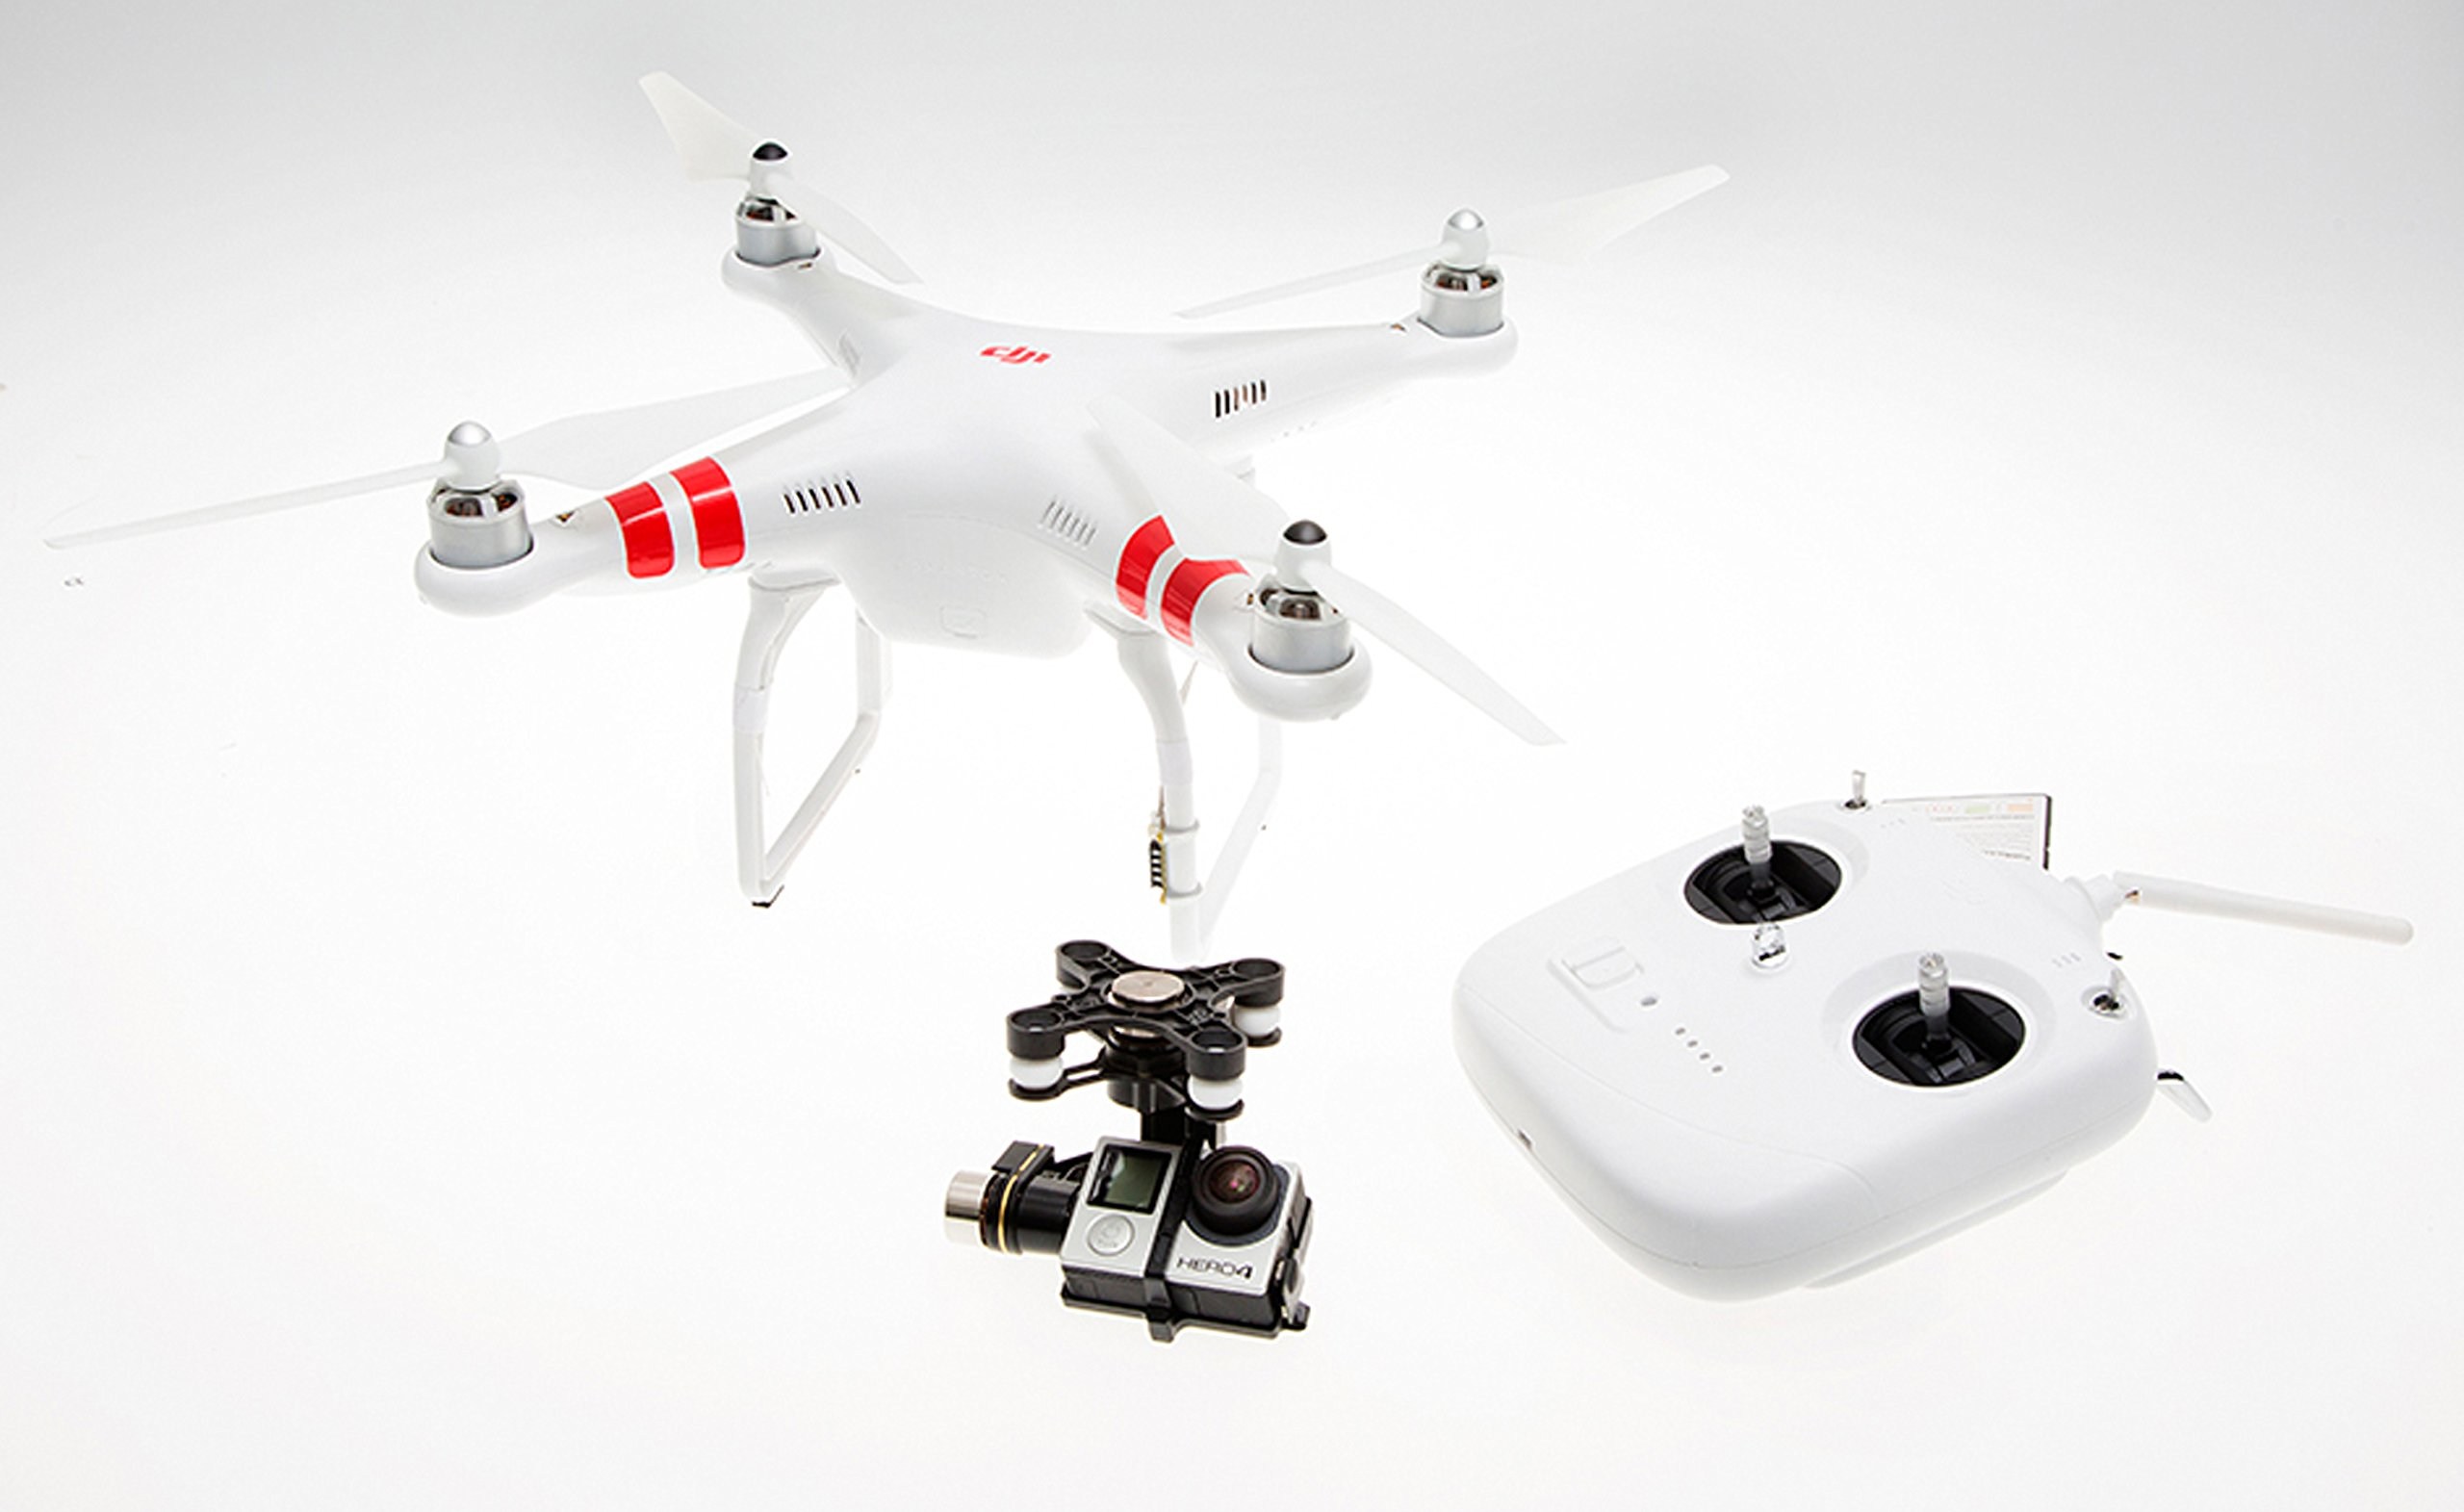 DJI Zenmuse H4-3D Gimbal for Phantom 2 by DJI